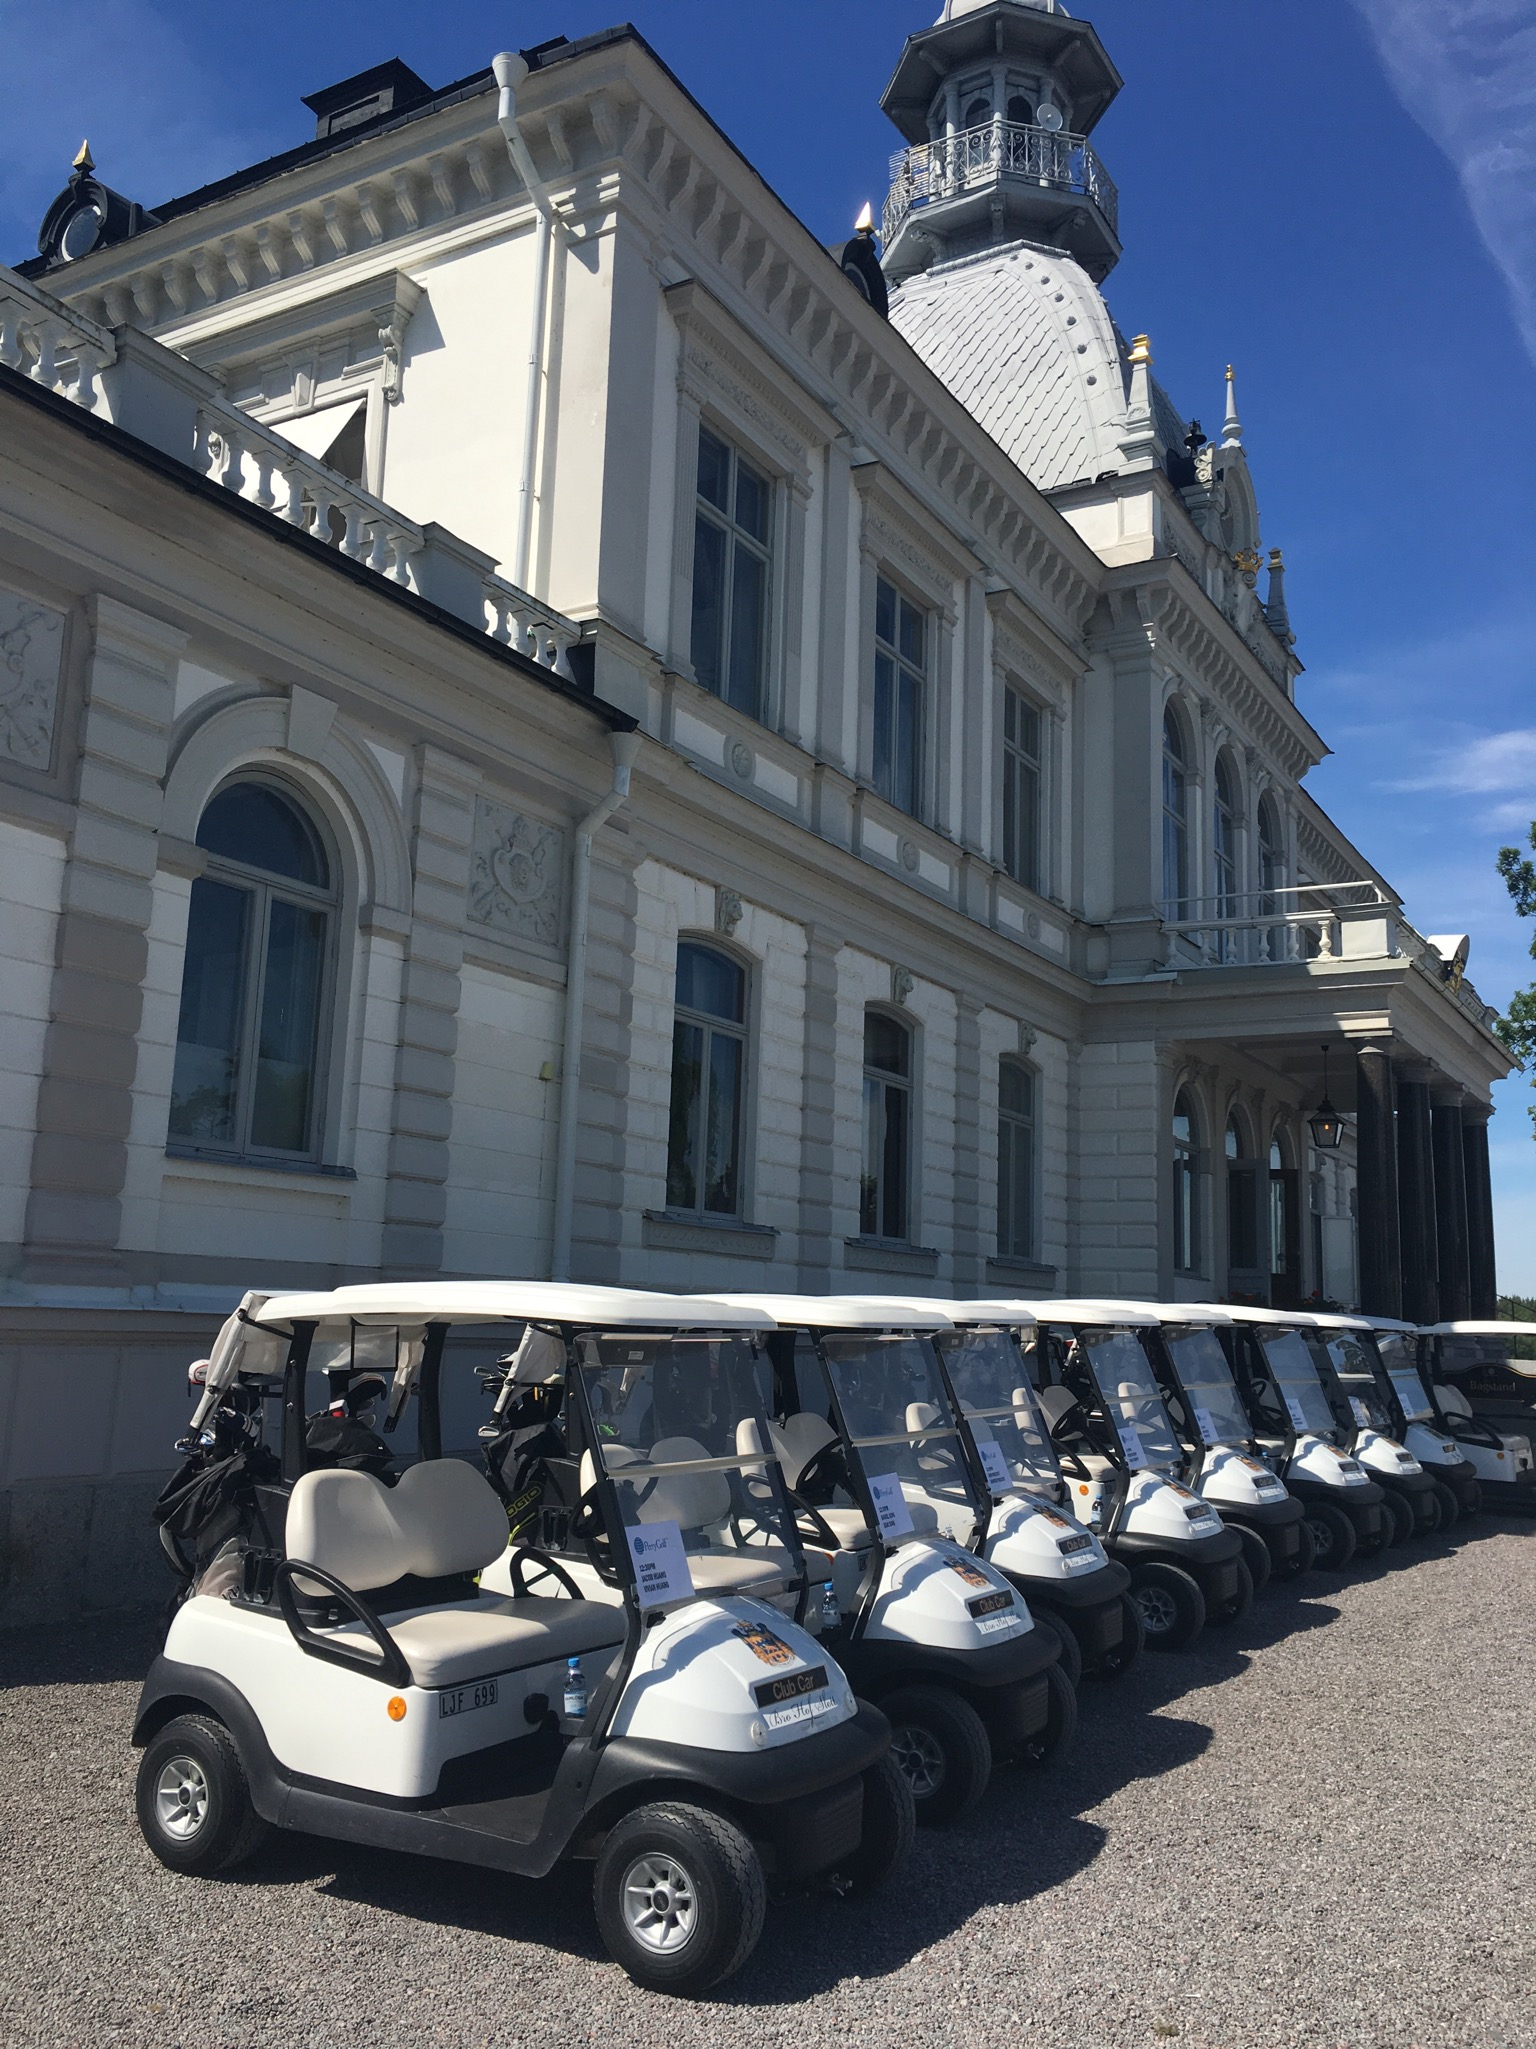 2016 Baltic Sea PerryGolf Cruise - Bro Hof Slott Golf Club - PerryGolf.com